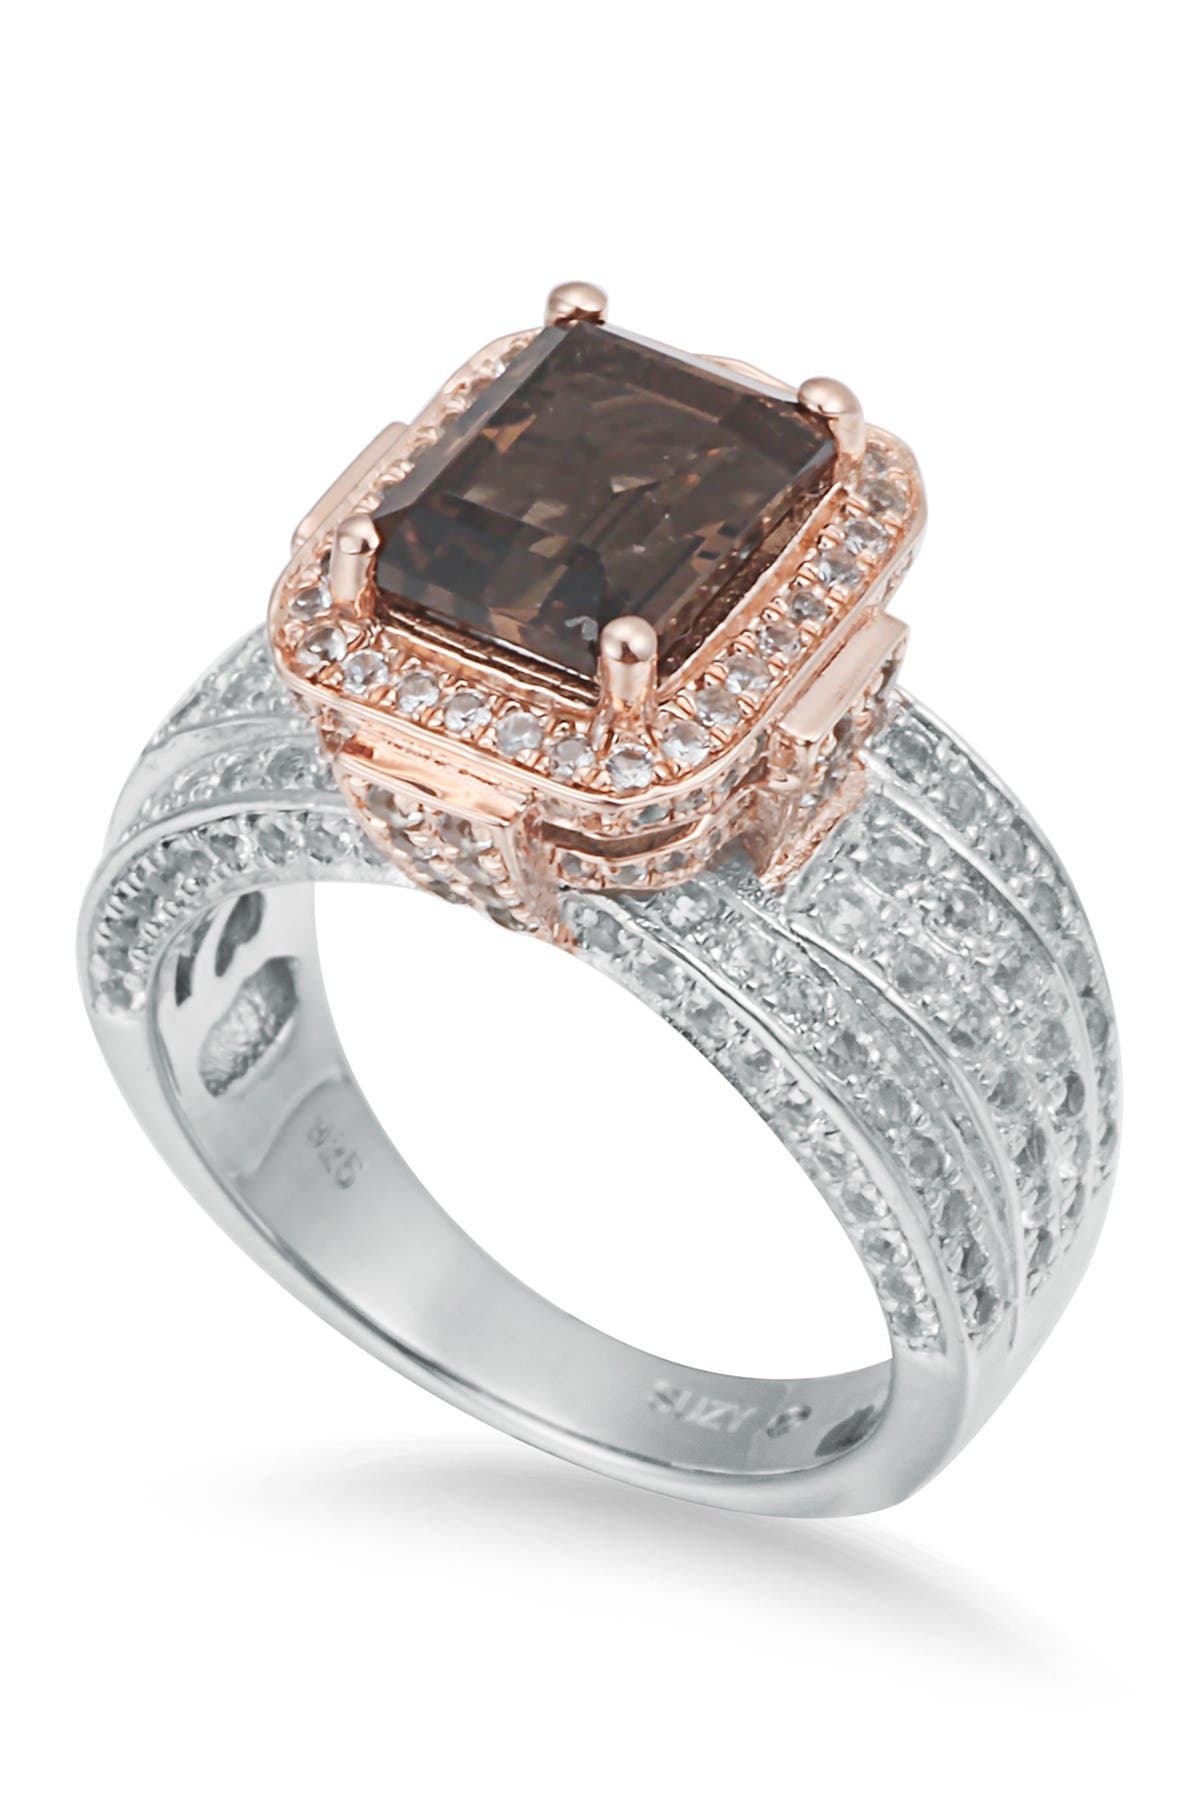 Image of Suzy Levian Sterling Silver Smoky Quartz Ring